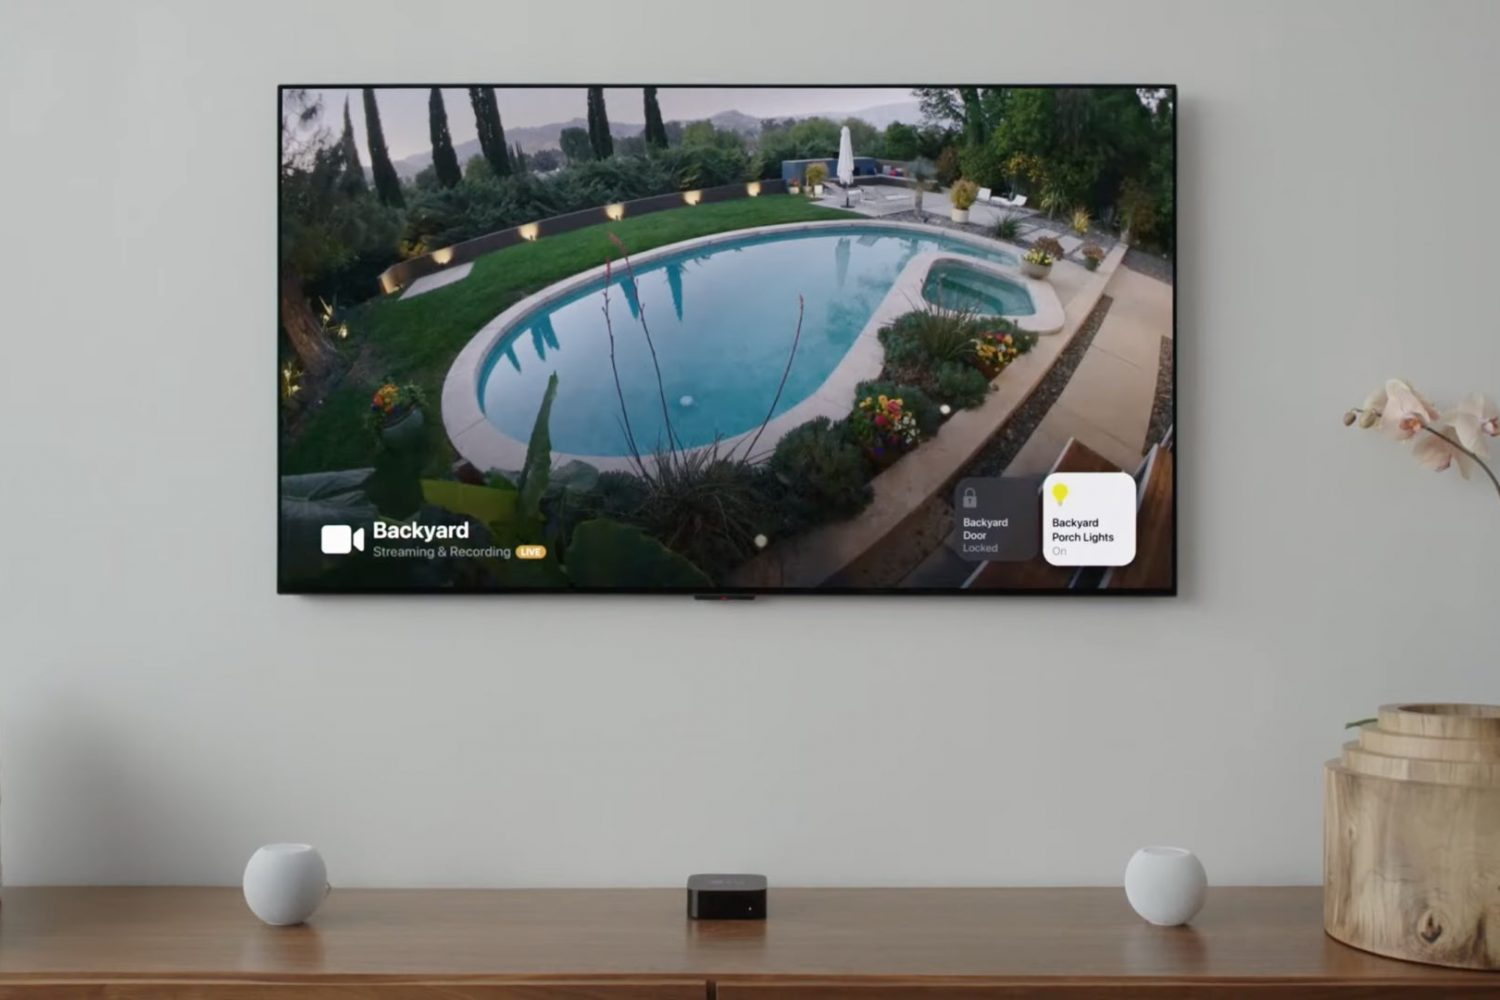 An image showing a HomeKit security camera feed displayed on Apple TV with tvOS 15, with smart lighting controls visible in screen corners